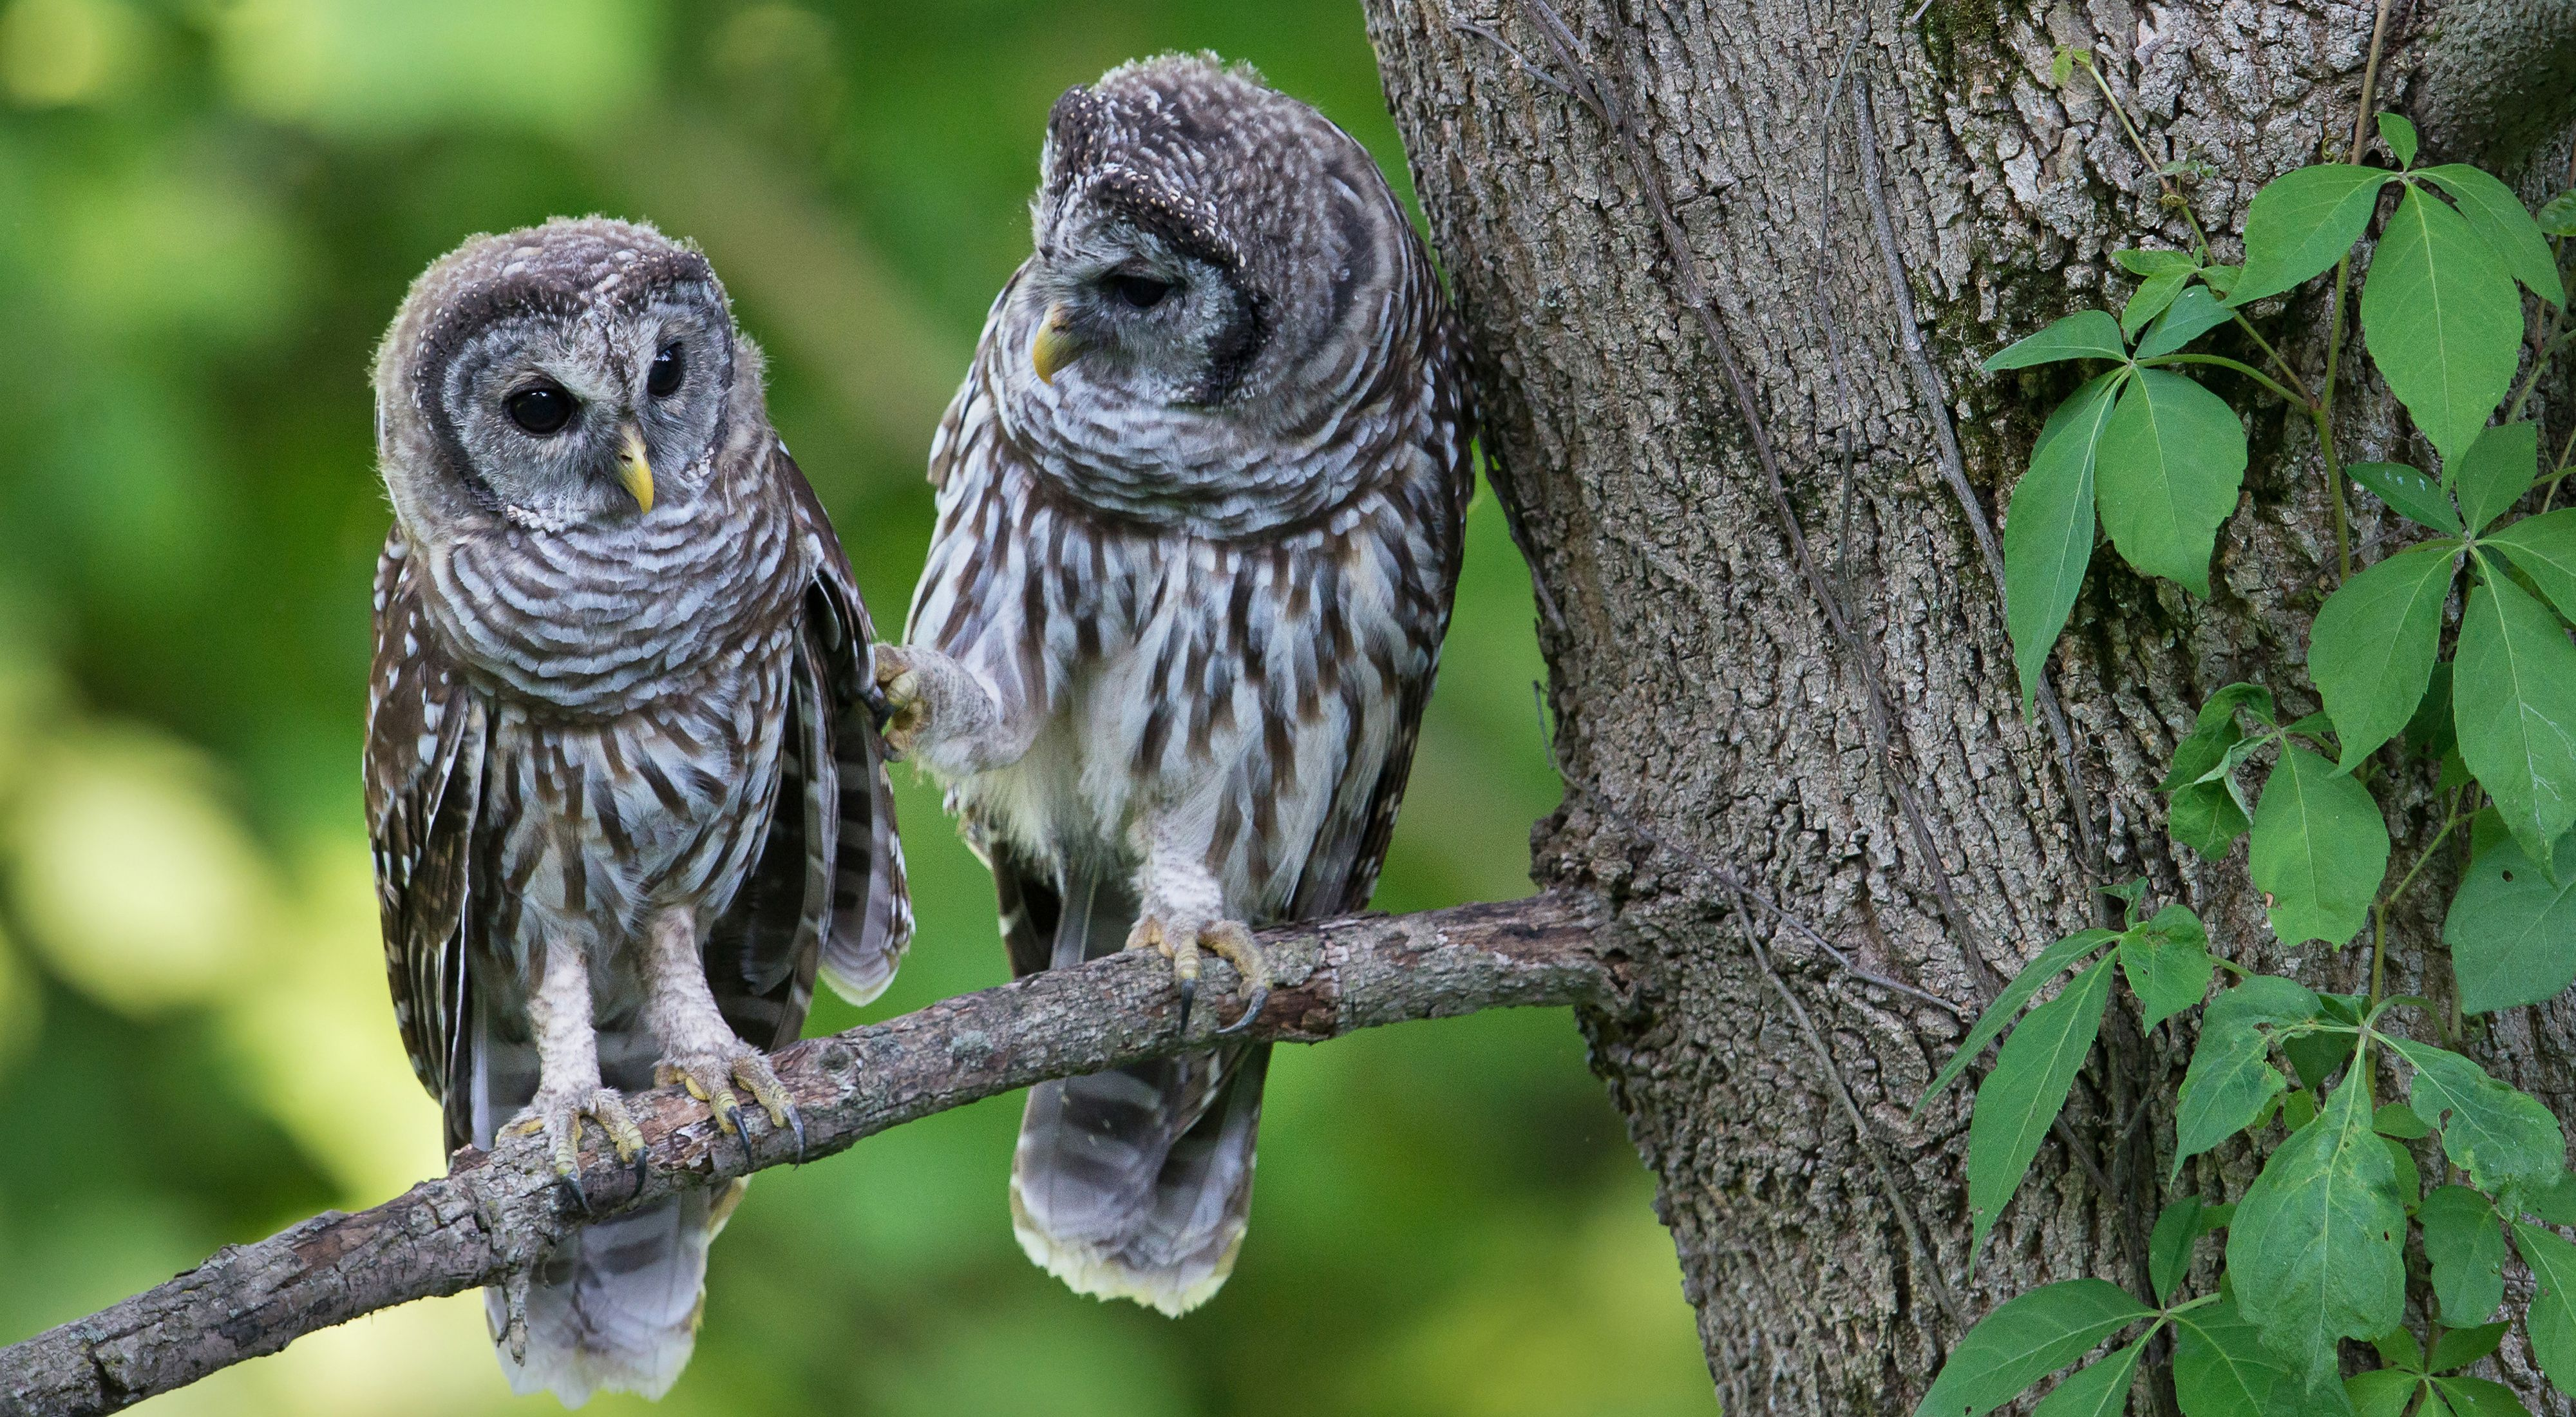 Two mottled owls perched on a tree branch.